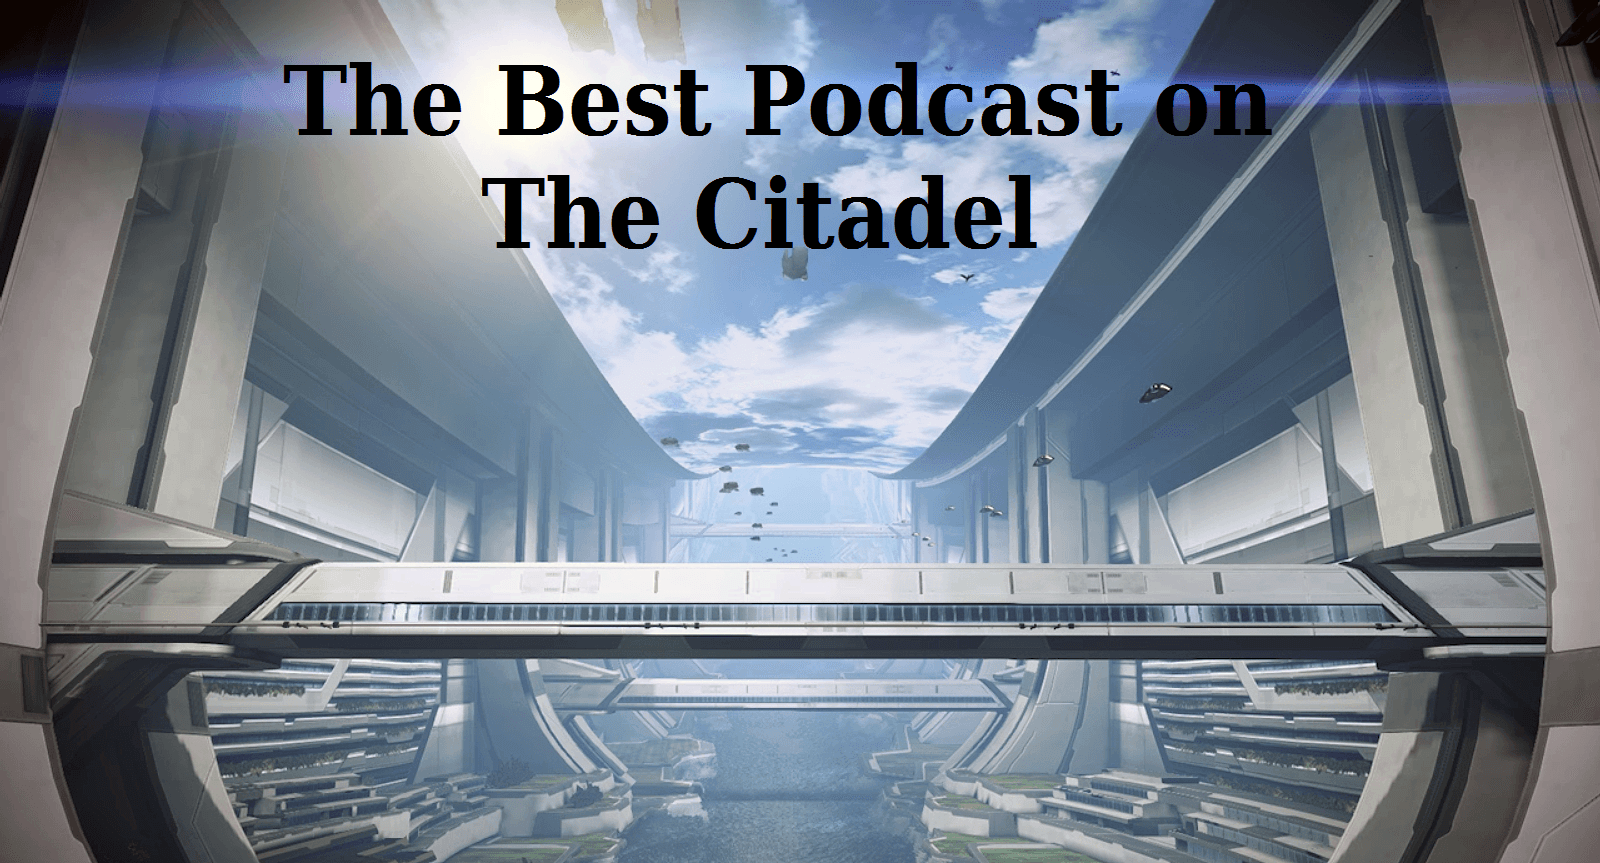 The Best Podcast on the Citadel, Episode 26